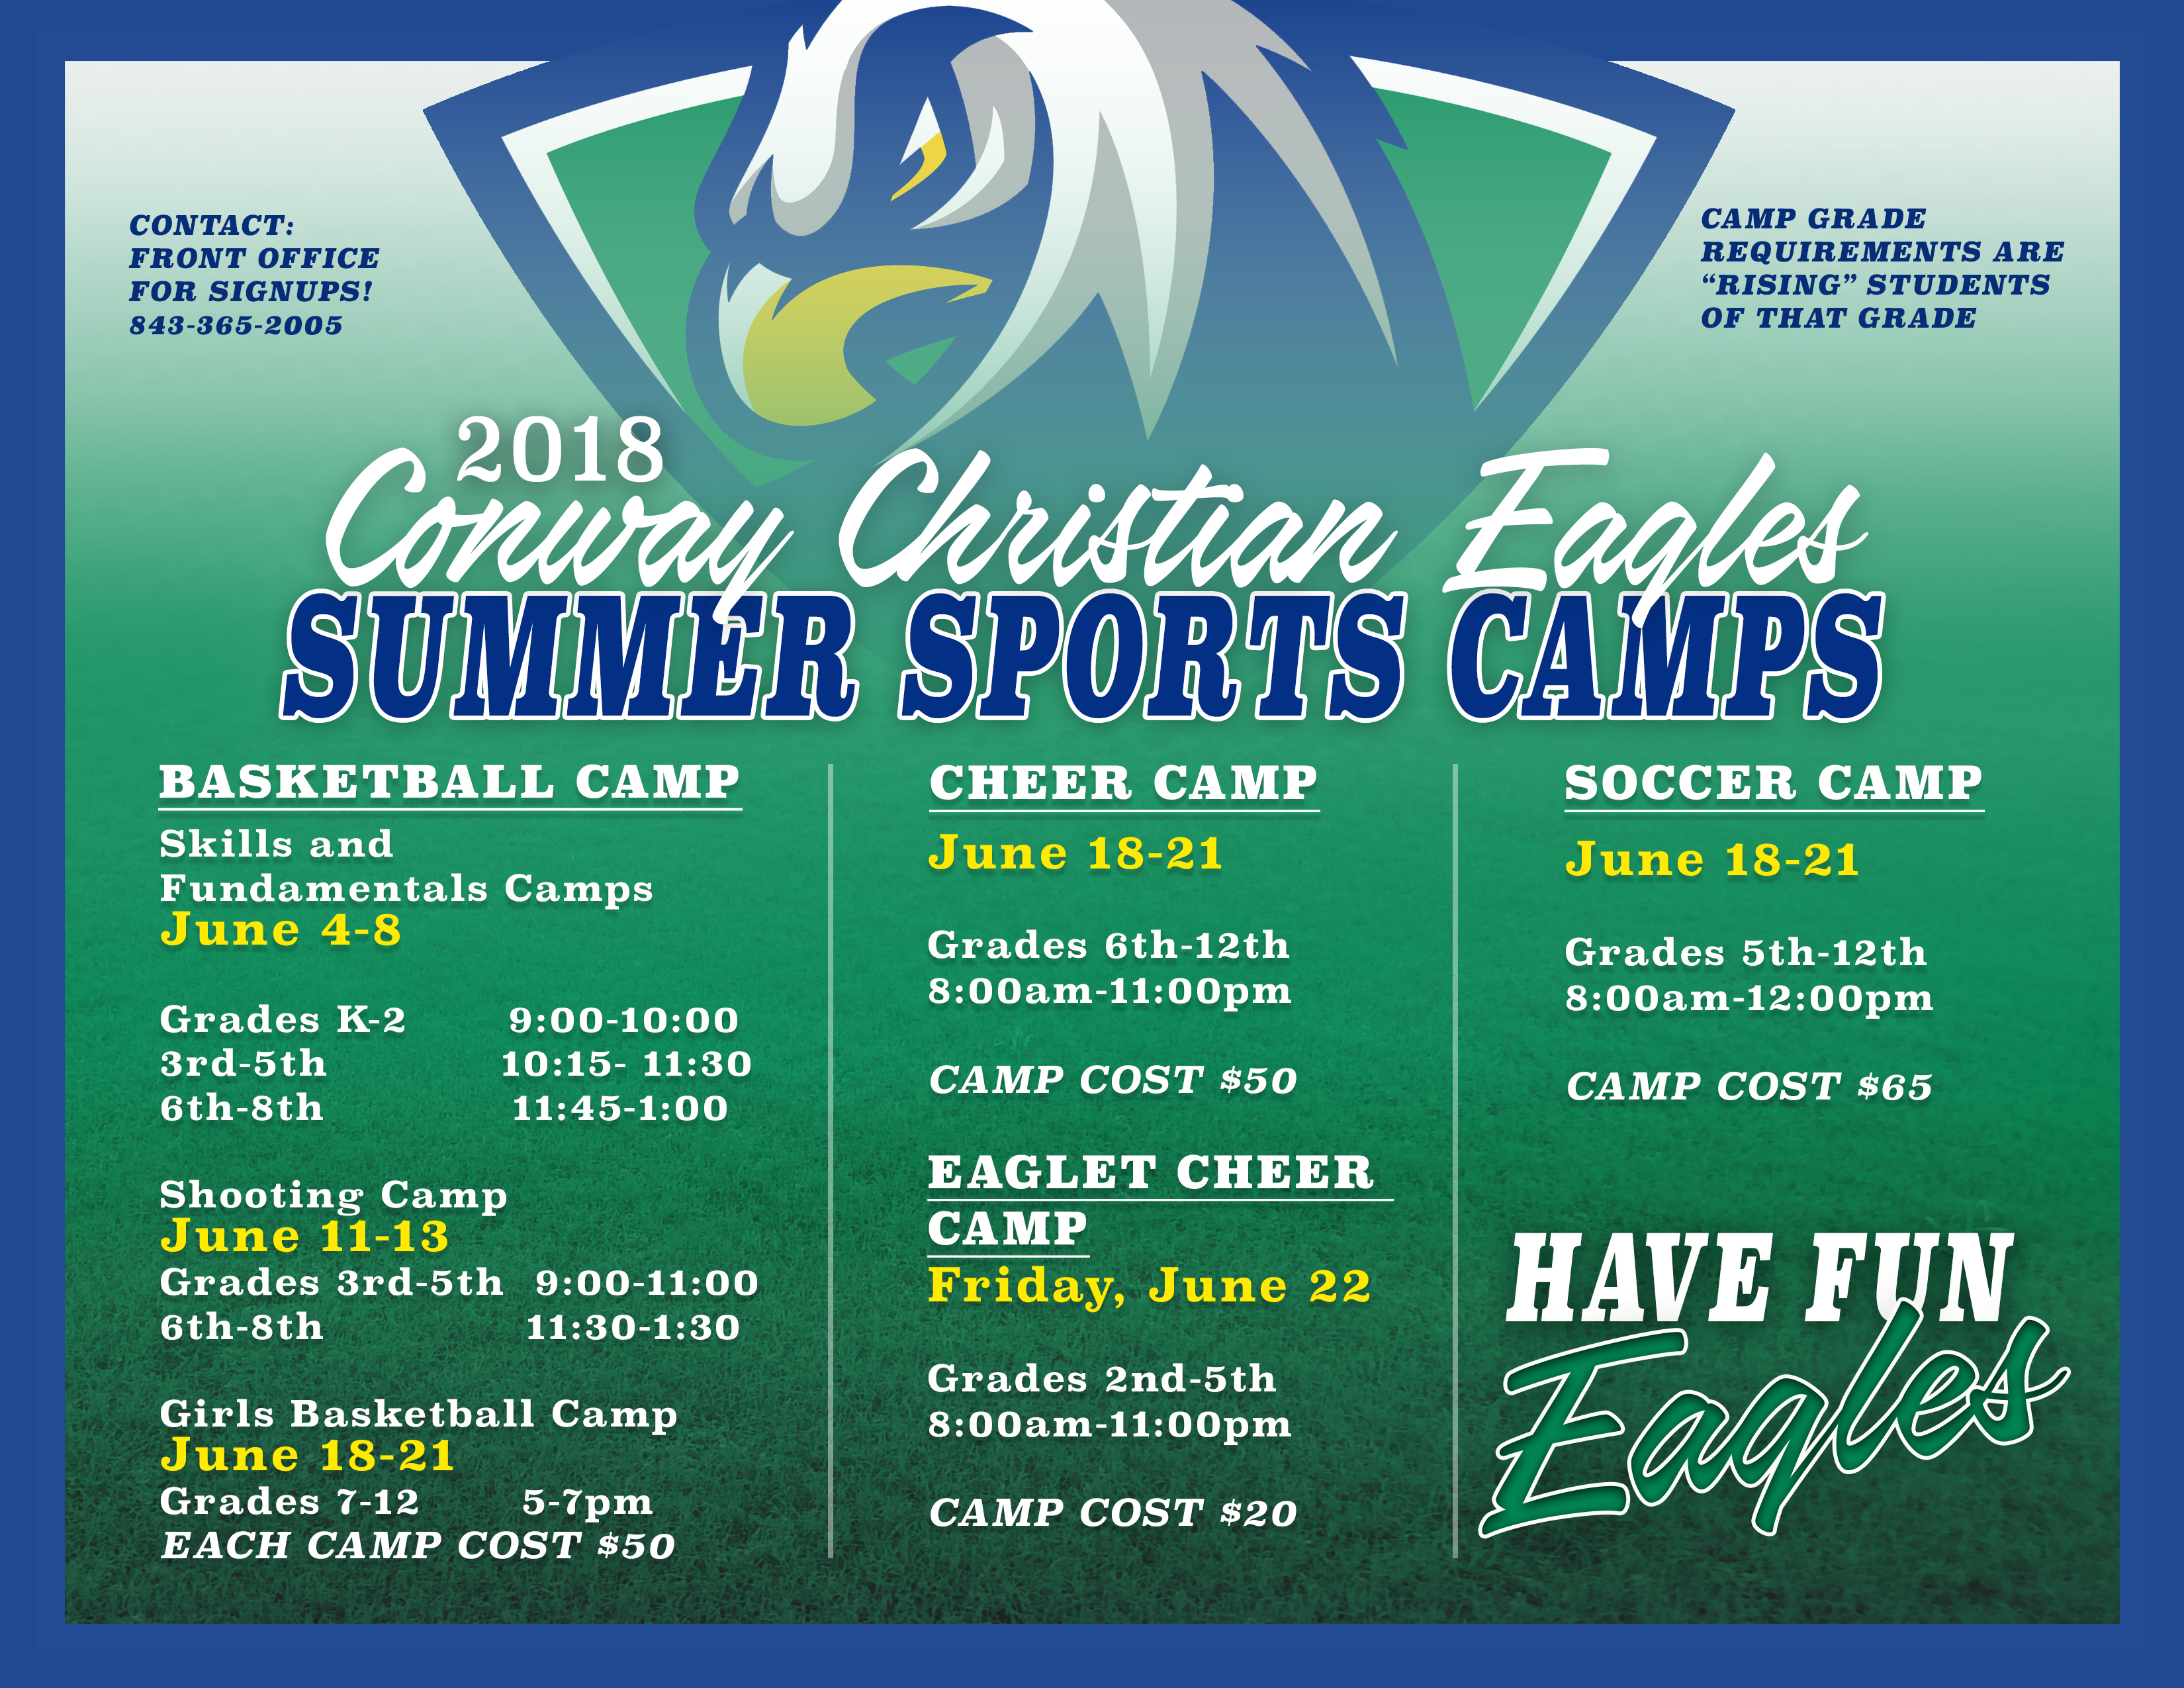 Summer Sports Camps Open for Registration!